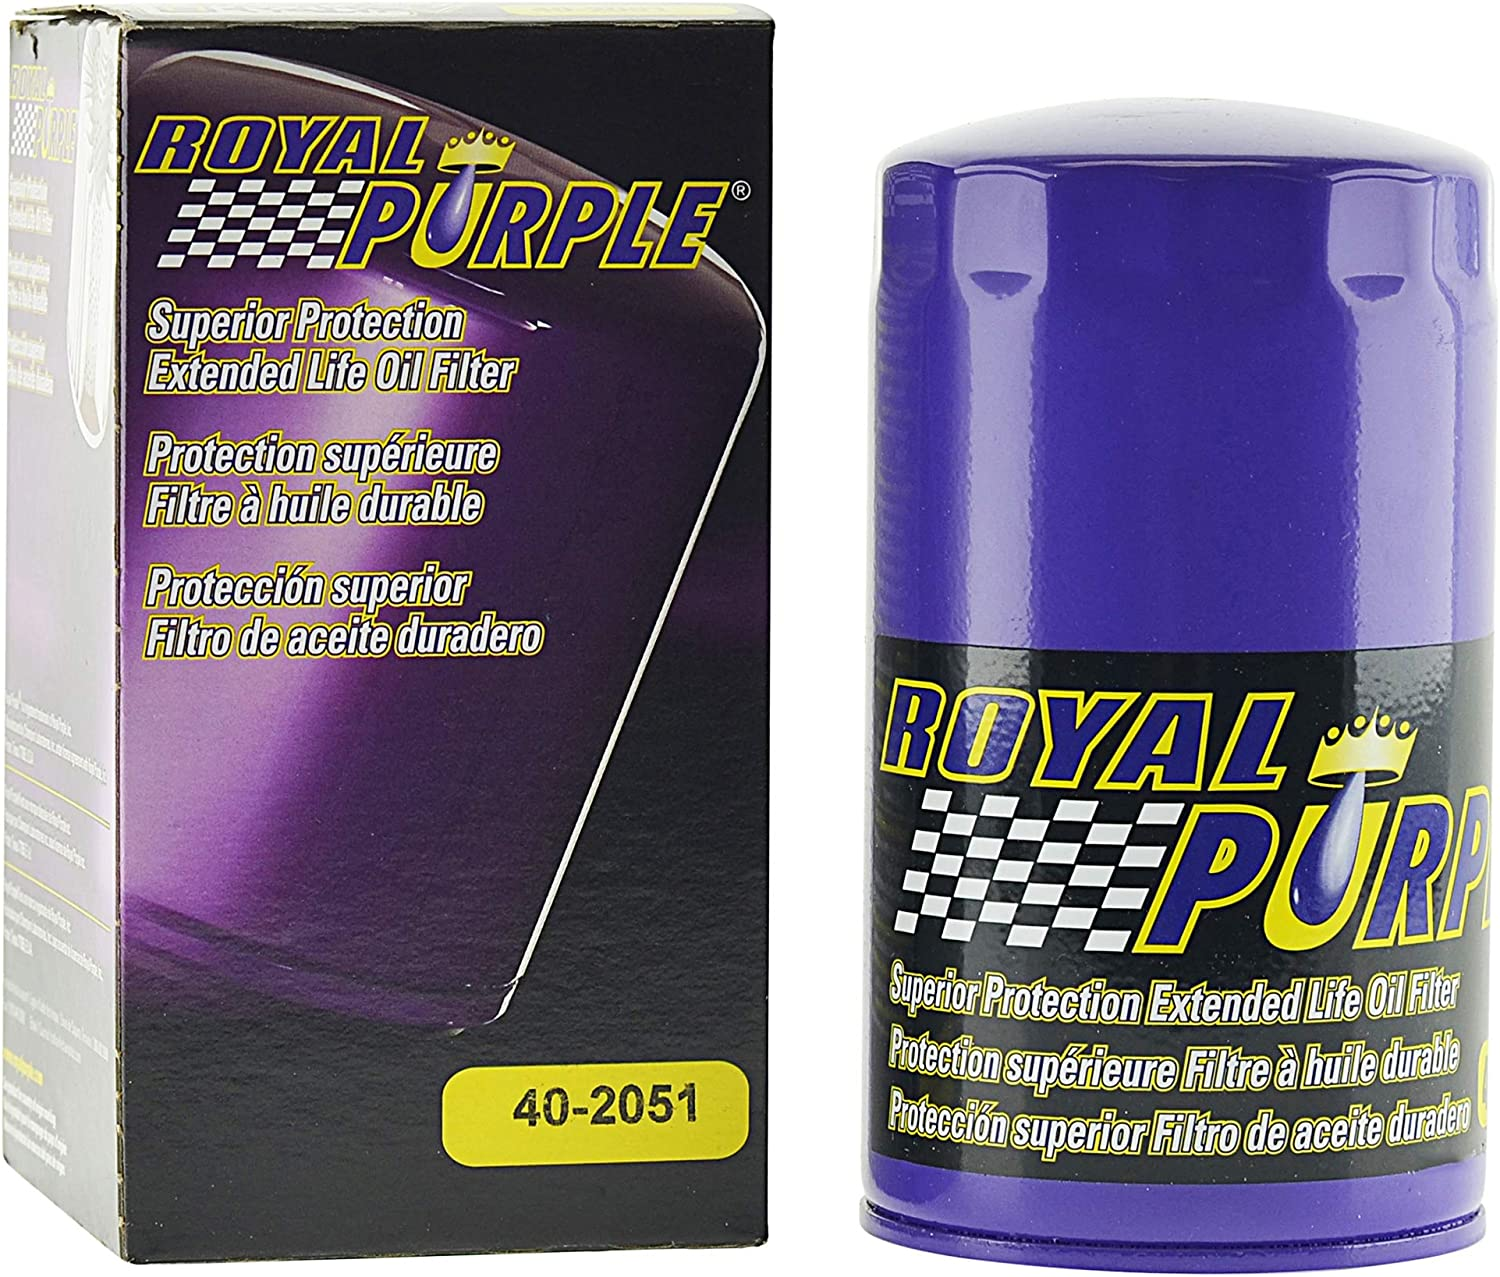 High Performance Premium Oil Filter 40-2051(FL2051S), Ford Super Duty Pickup 6.7L (2011-19), by Royal Purple